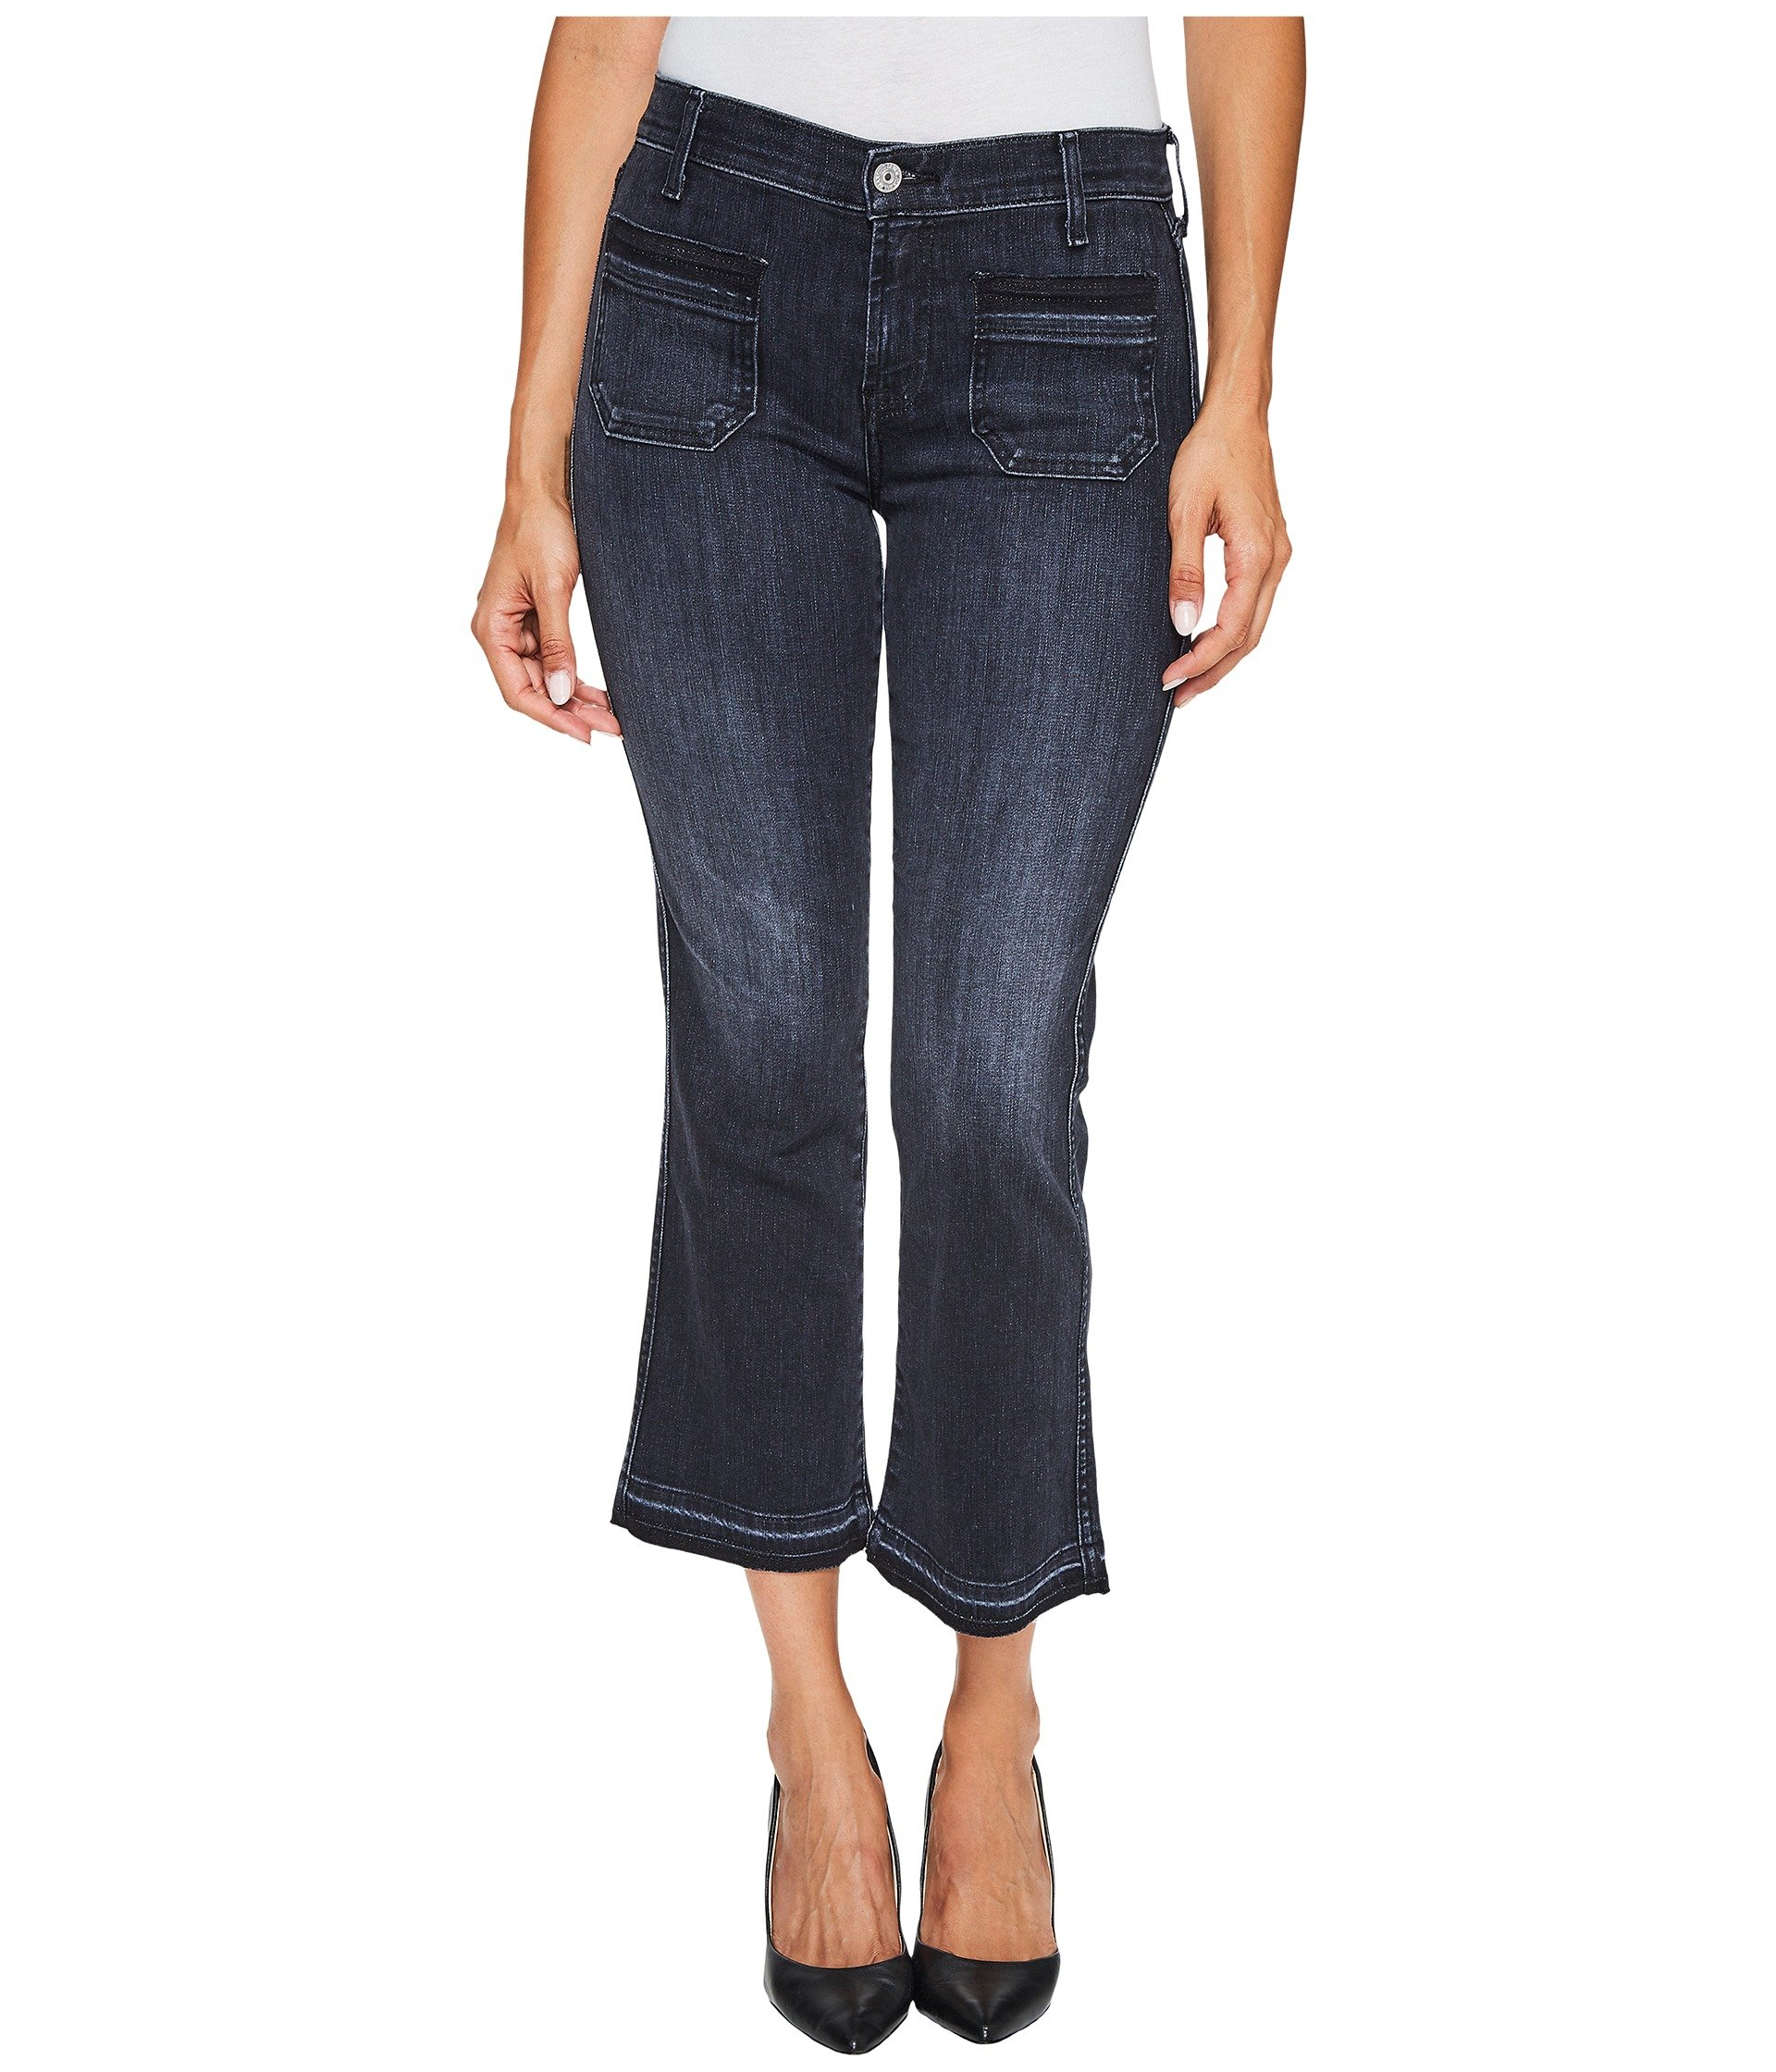 Cropped Boot Jeans w/ Front Released Pockets & Released Hem in Authentic Black 2